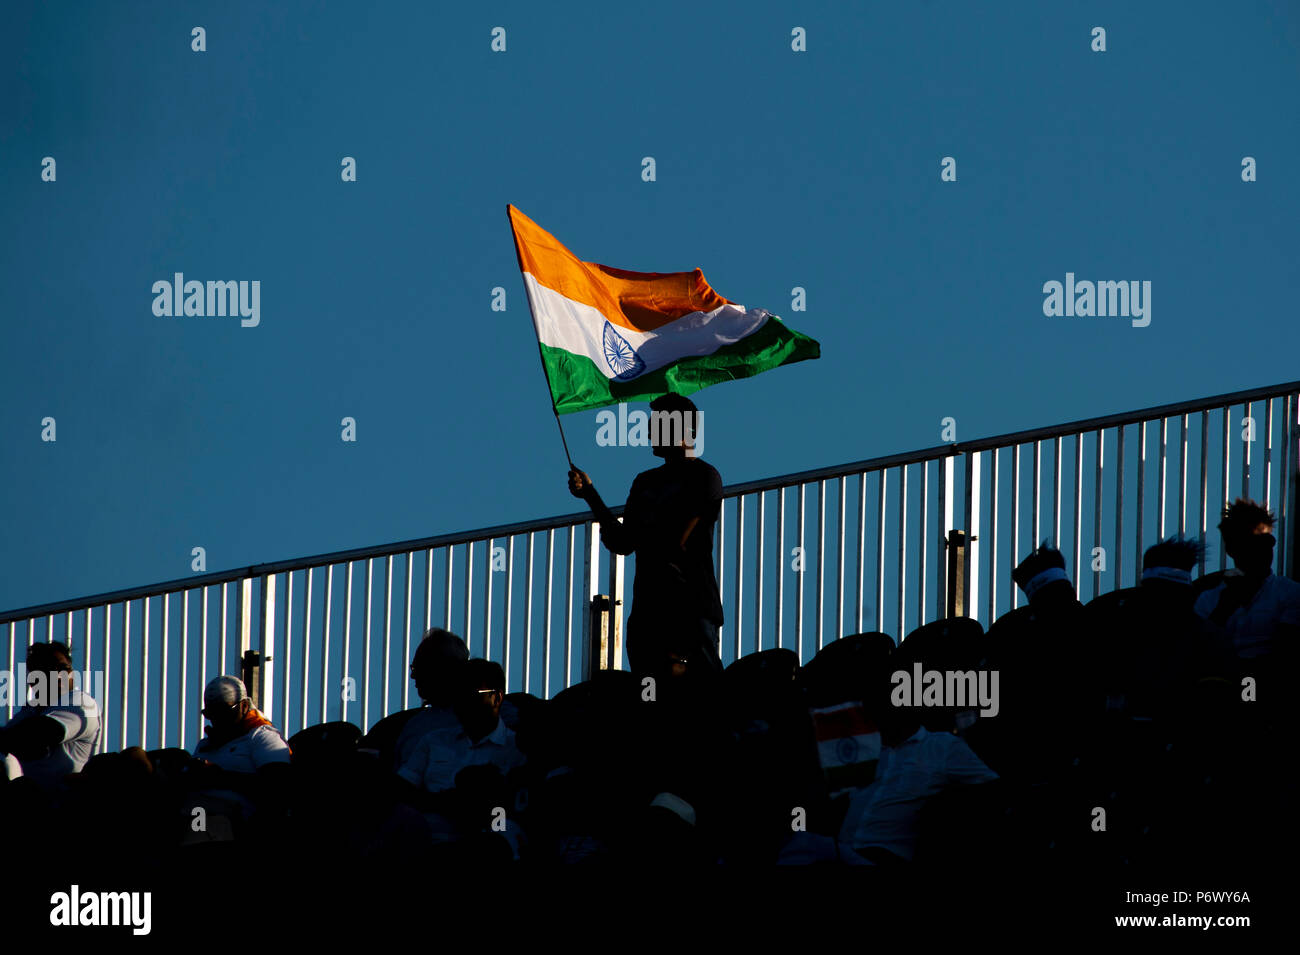 Manchester, UK. 3rd July 2018. An Indian fan in the crows during the 1st International T20 match between England and India at Old Trafford, Manchester, England on 3 July 2018. Photo by Brandon Griffiths. Credit: Brandon Griffiths/Alamy Live News - Stock Image